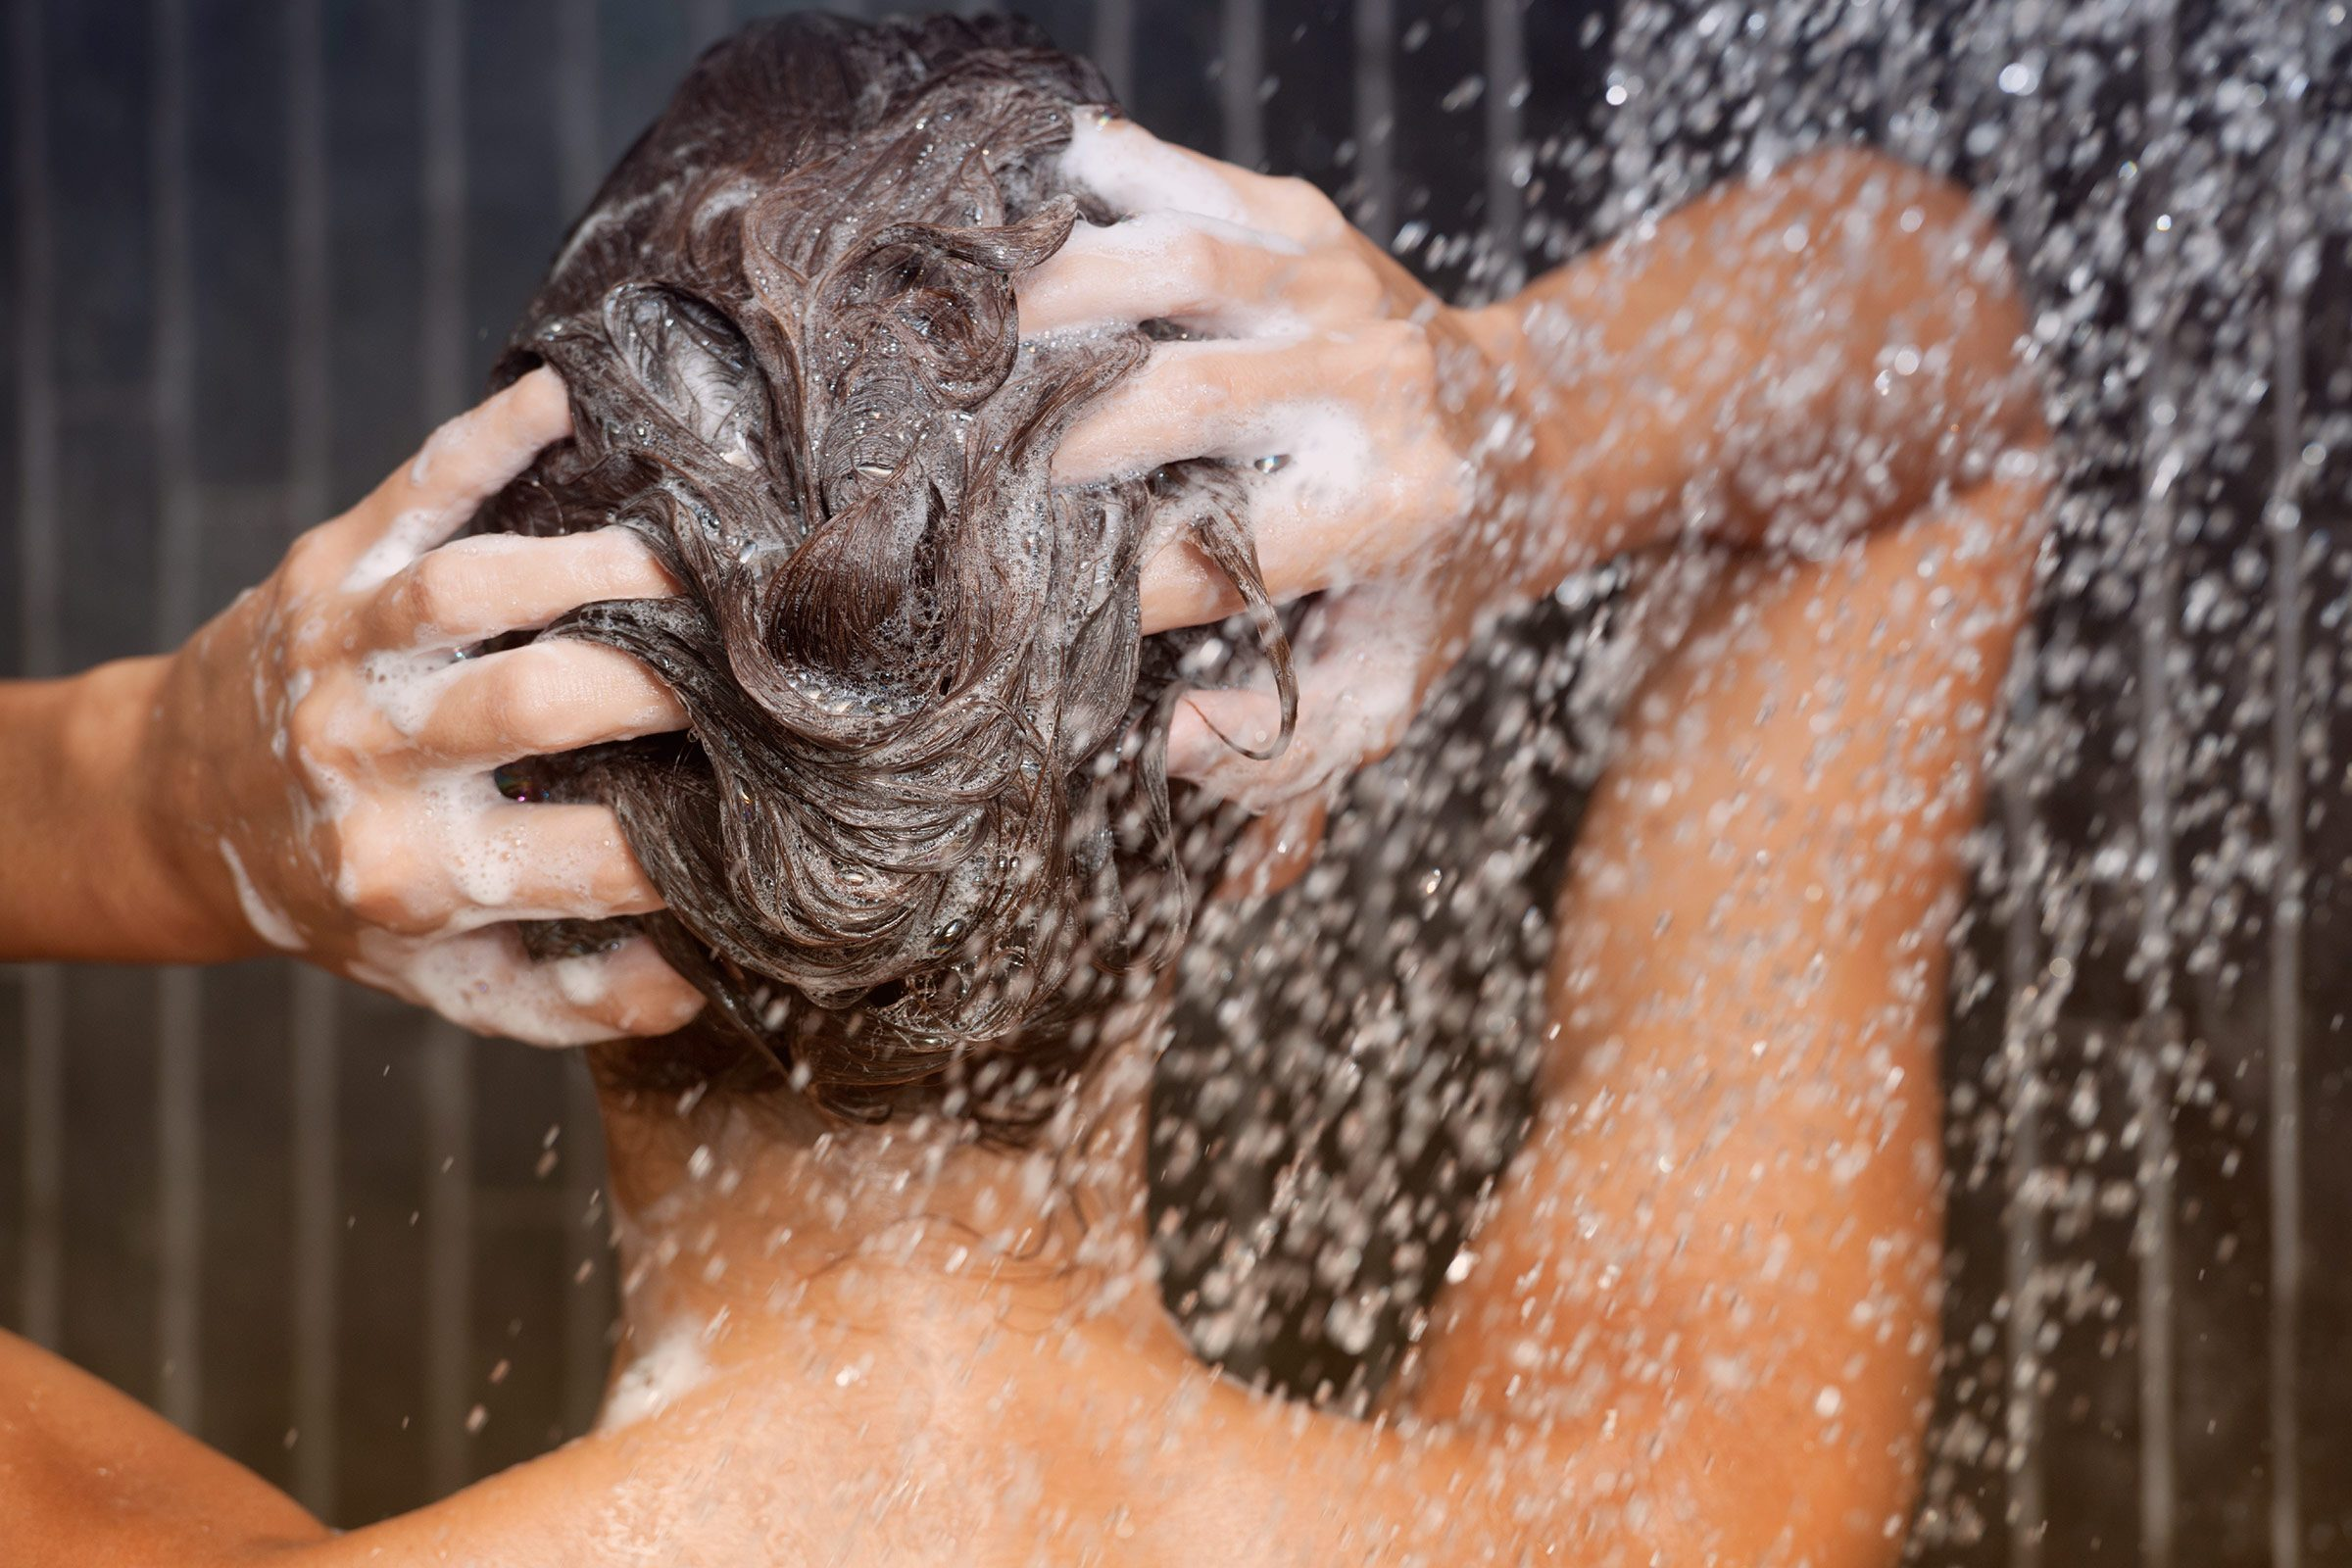 Shampooing daily: possibly harmful.